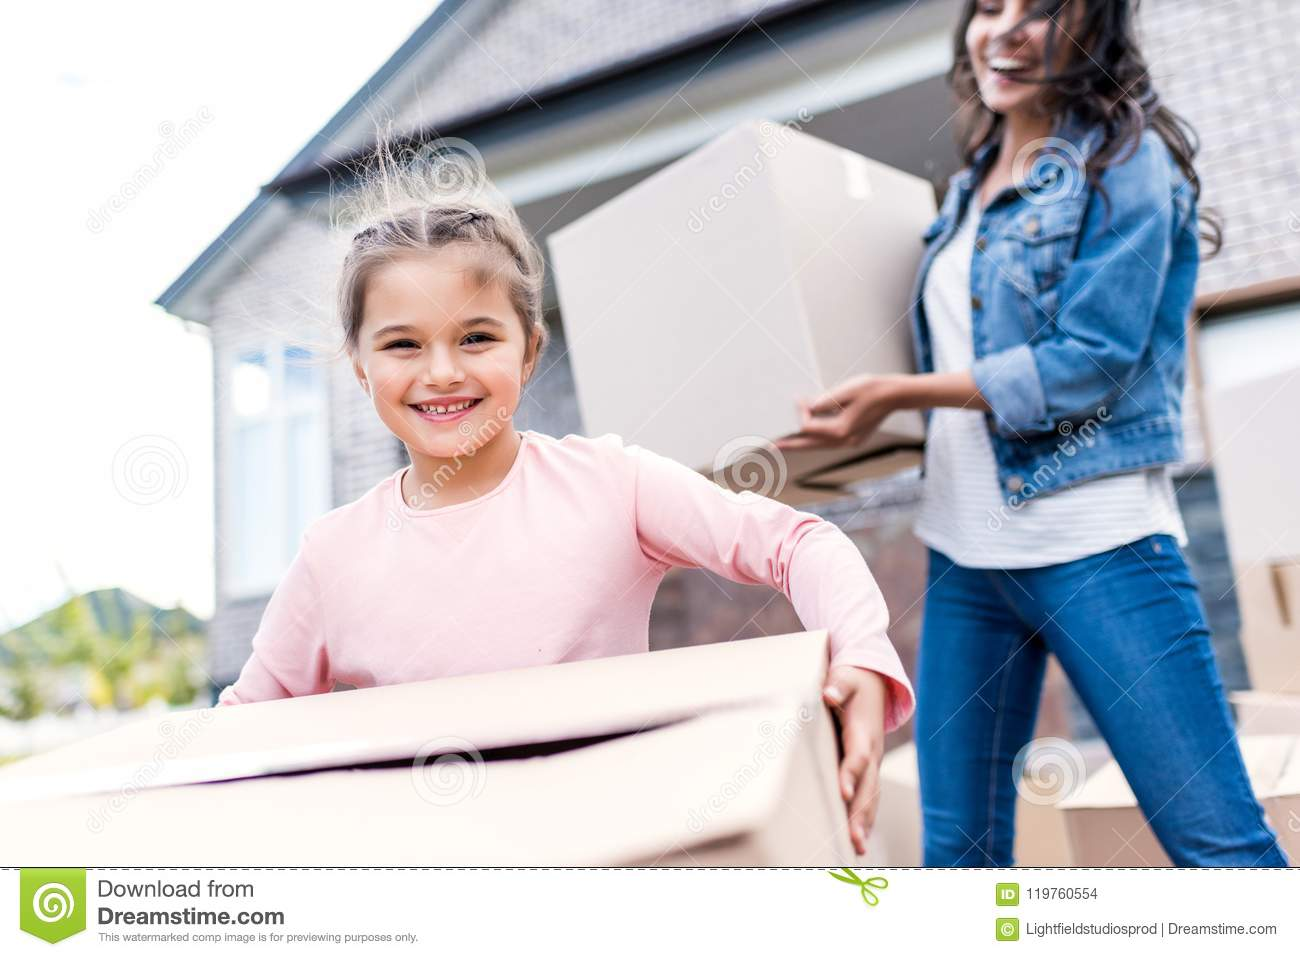 mother and daughter carrying boxes for moving into